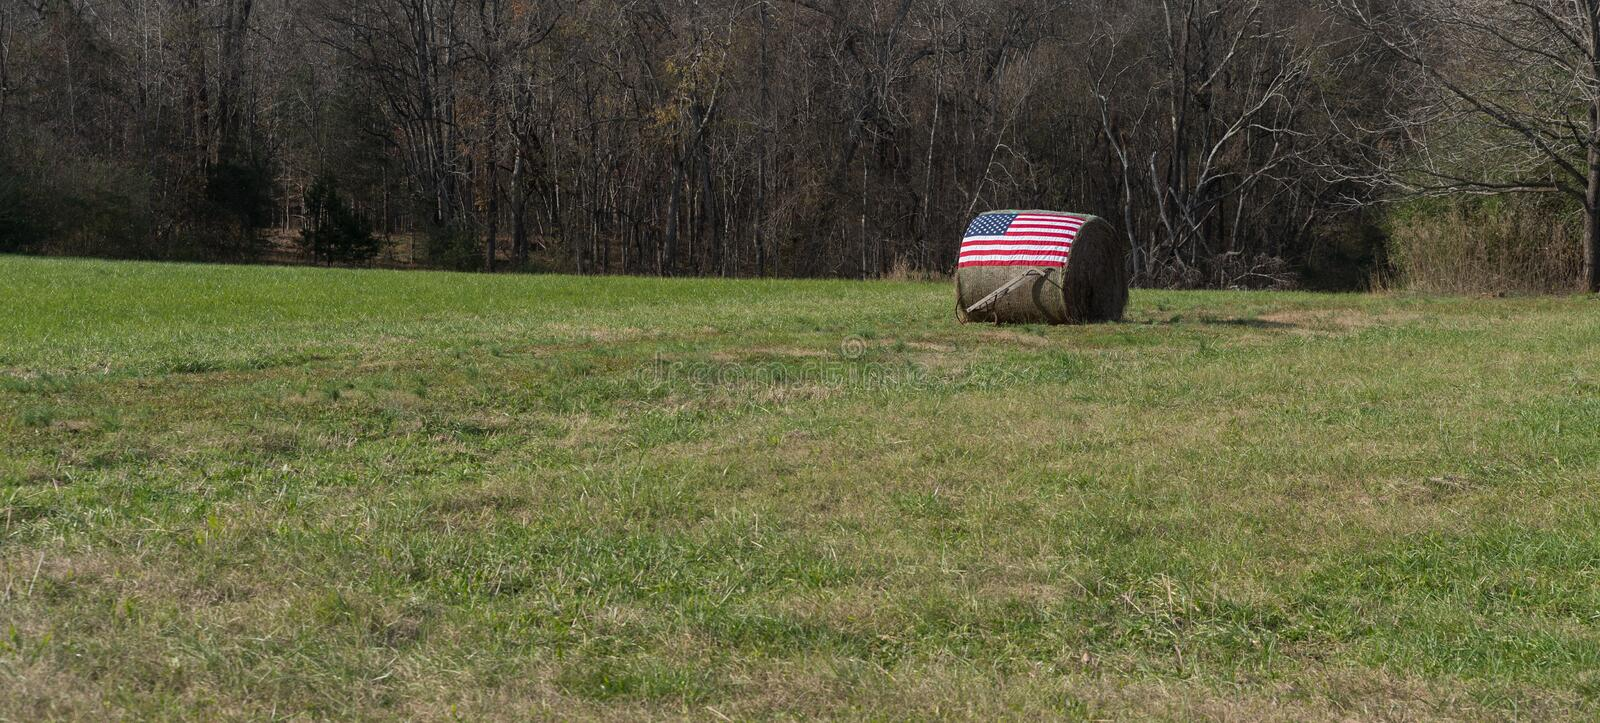 American flag on bale of hay stock photography